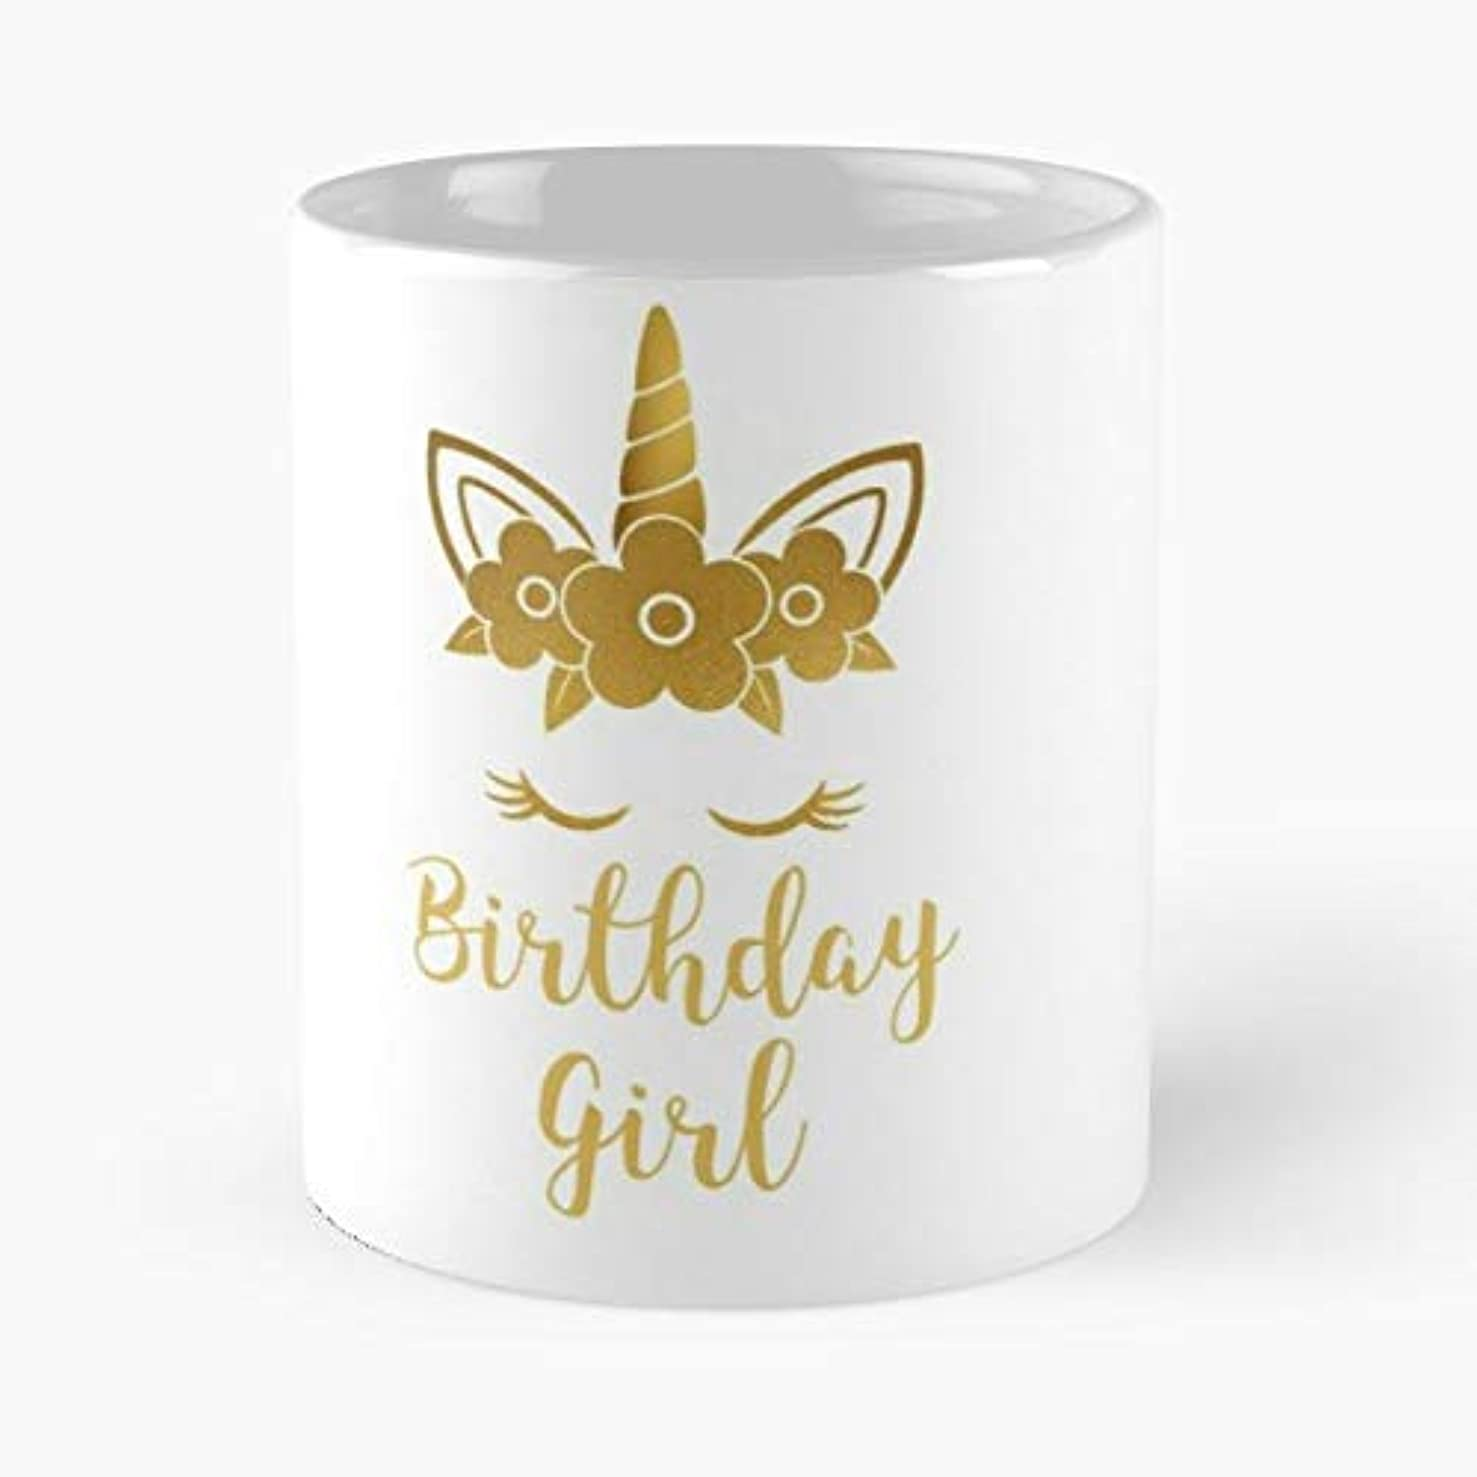 Gift Idea Girl Woman Funny Christmas Day Mug Gifts Ideas For Mom - Great Ceramic Coffee Tea Cup